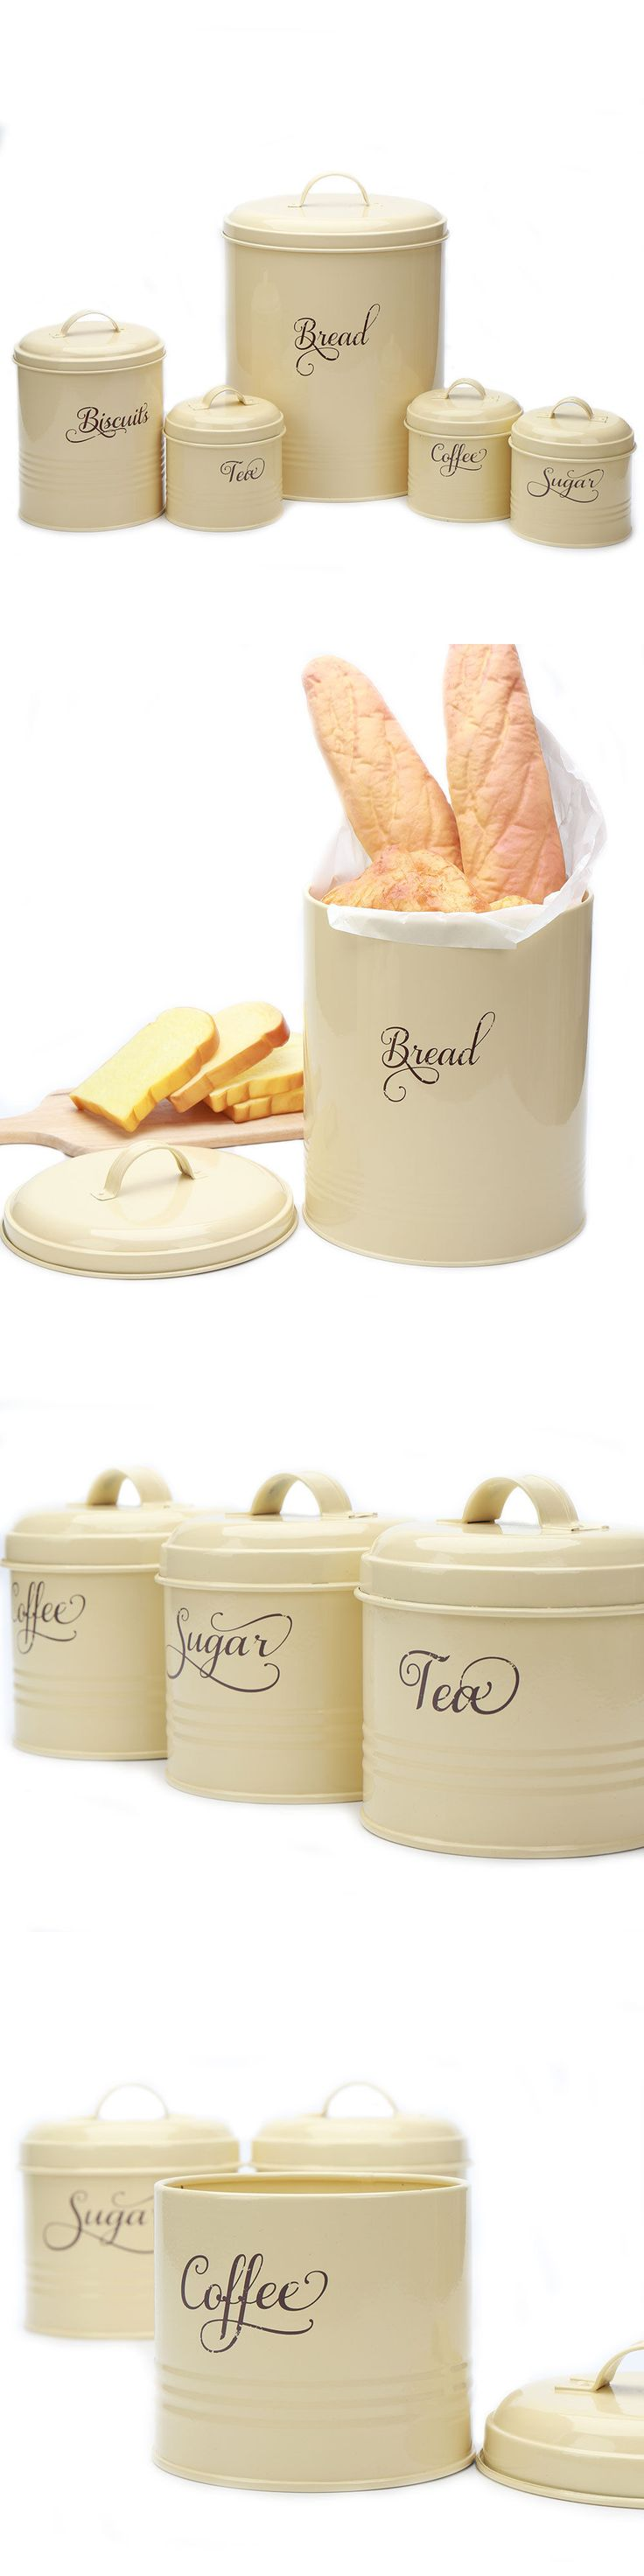 Canisters and Jars 20654: X687 Set 5 Storage Canisters Metal Sugar Coffee Tea Tin Bread Bin Container Box -> BUY IT NOW ONLY: $34.9 on eBay!